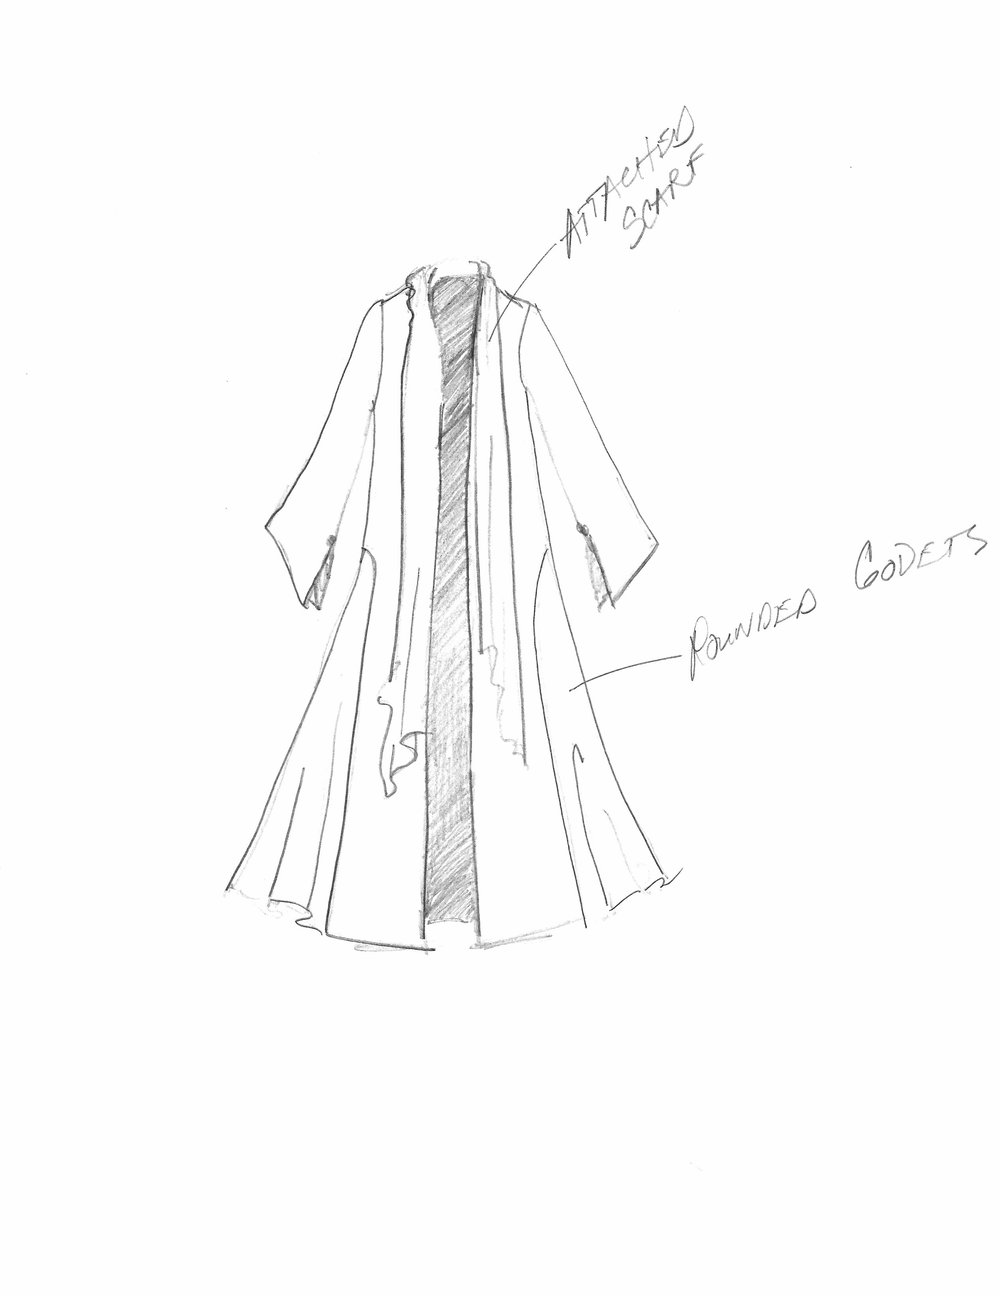 Sketch of her Rose Colored Velvet Duster from Season 3.  It has rounded and flared Godets on either side and deep slits in the underarm that reveal the lining.